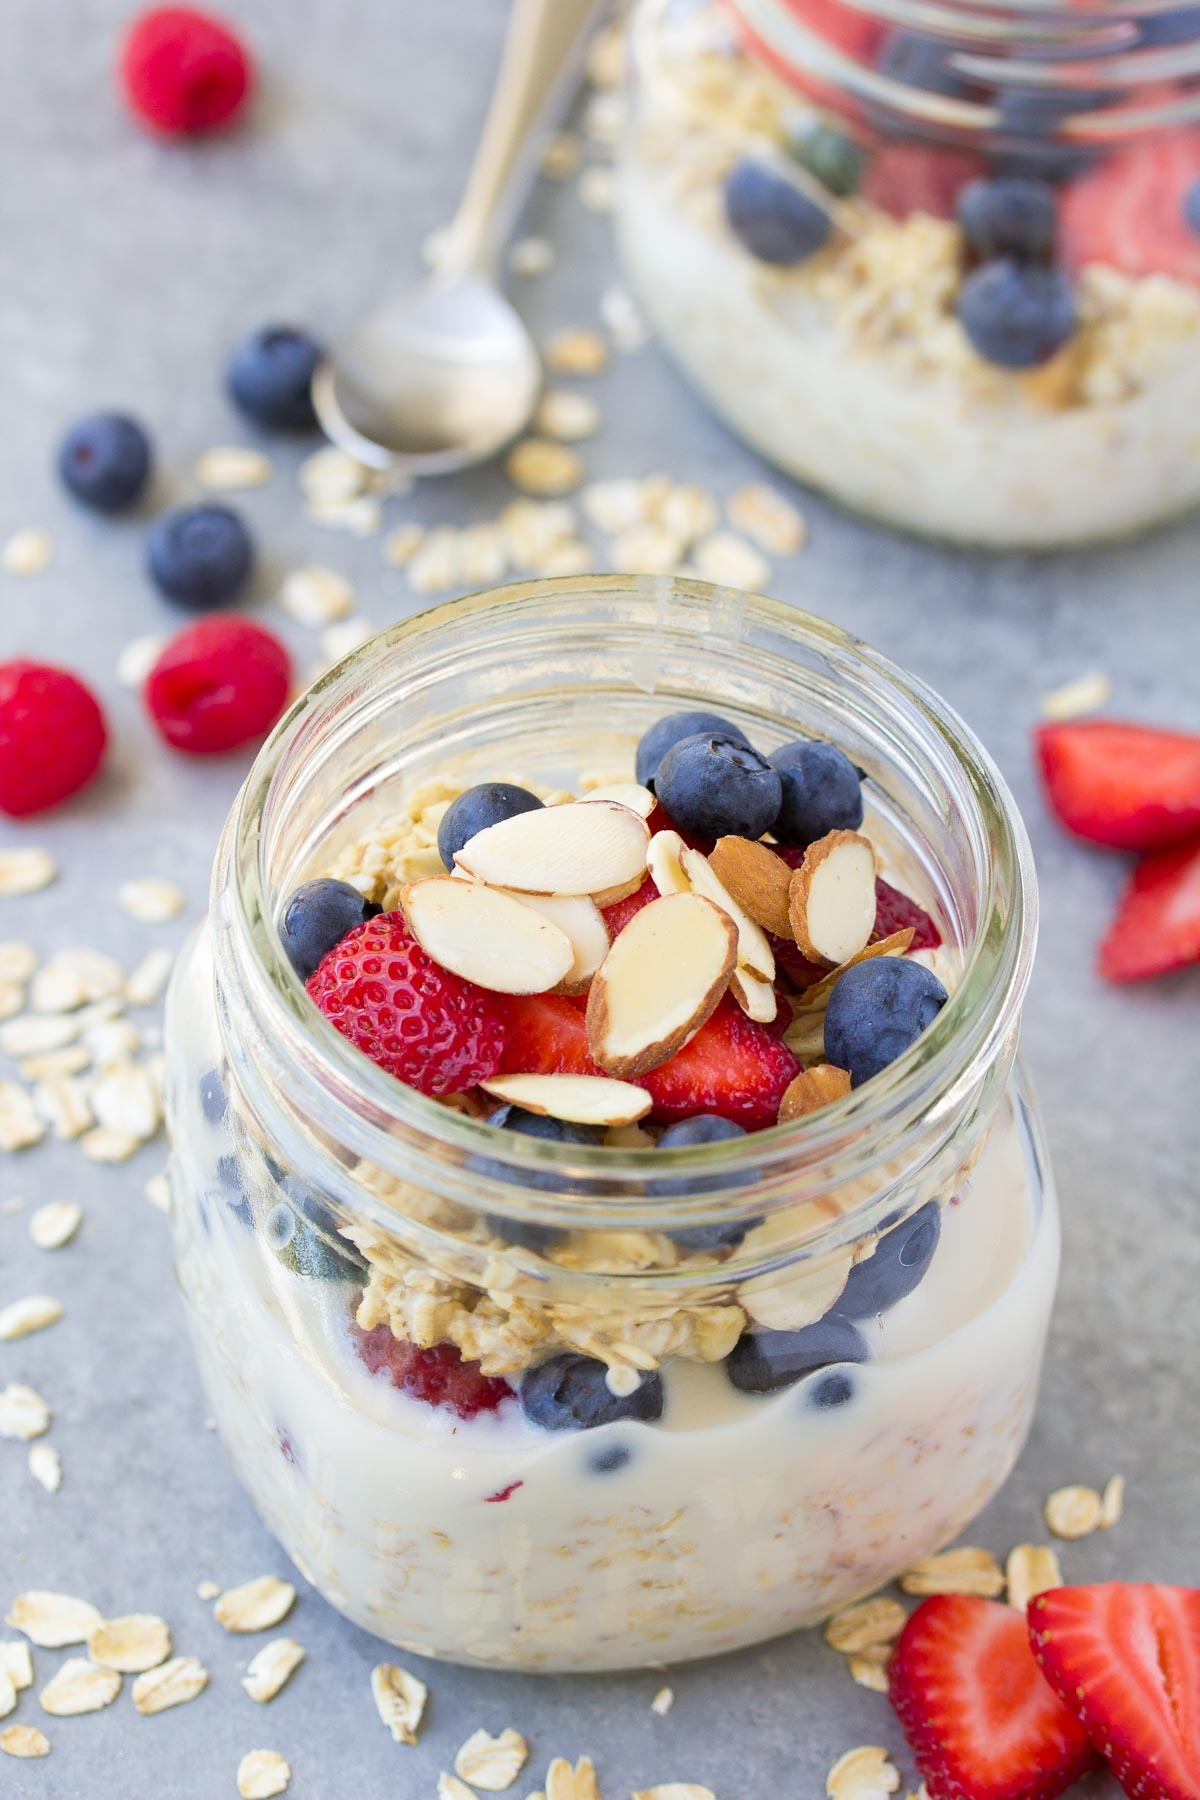 overnight oats in a jar with with fresh berries and almonds.